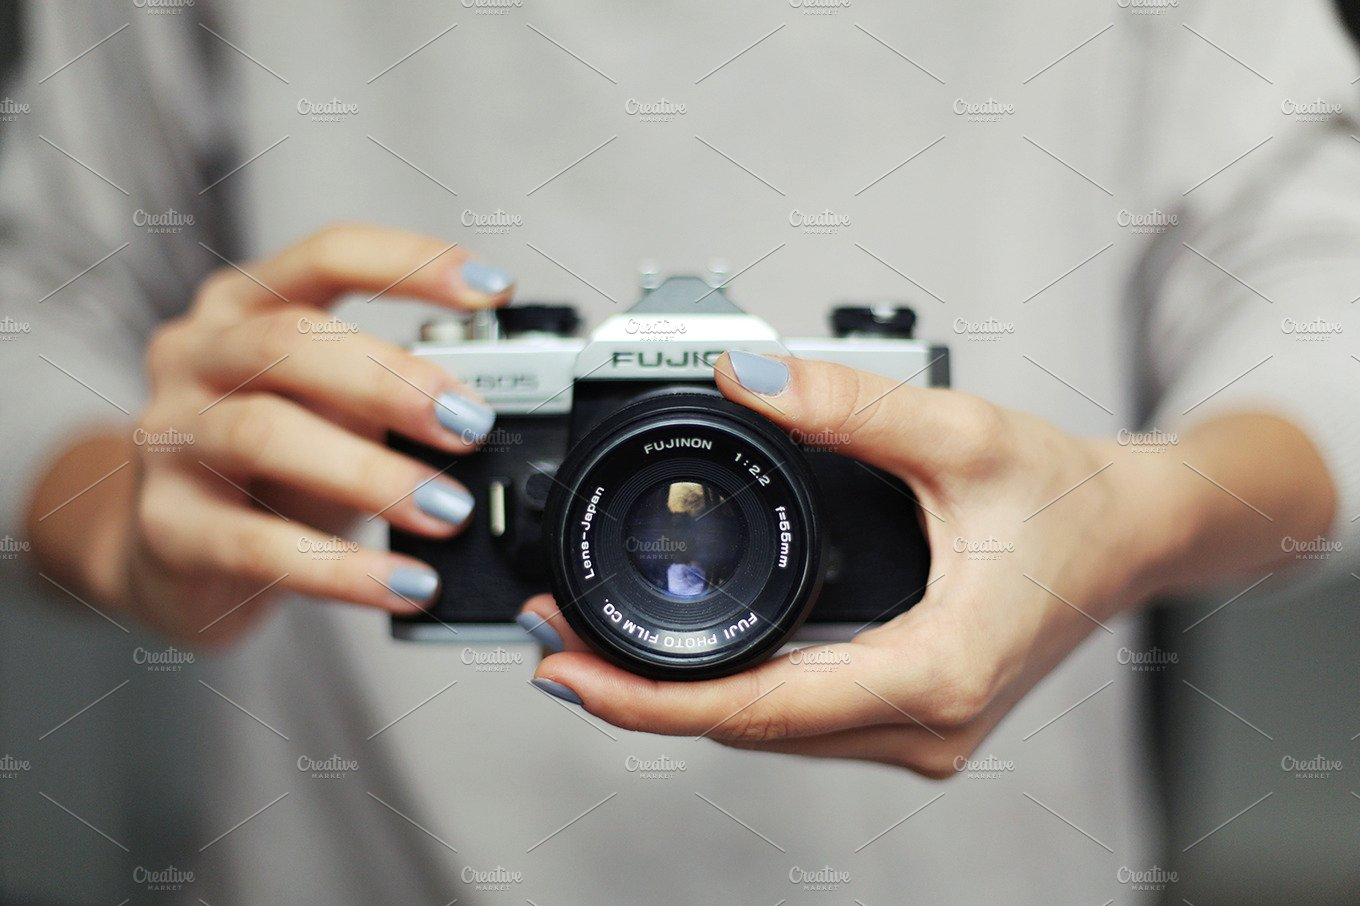 Camera Vintage Tumblr : Hands holding vintage camera ~ photos ~ creative market